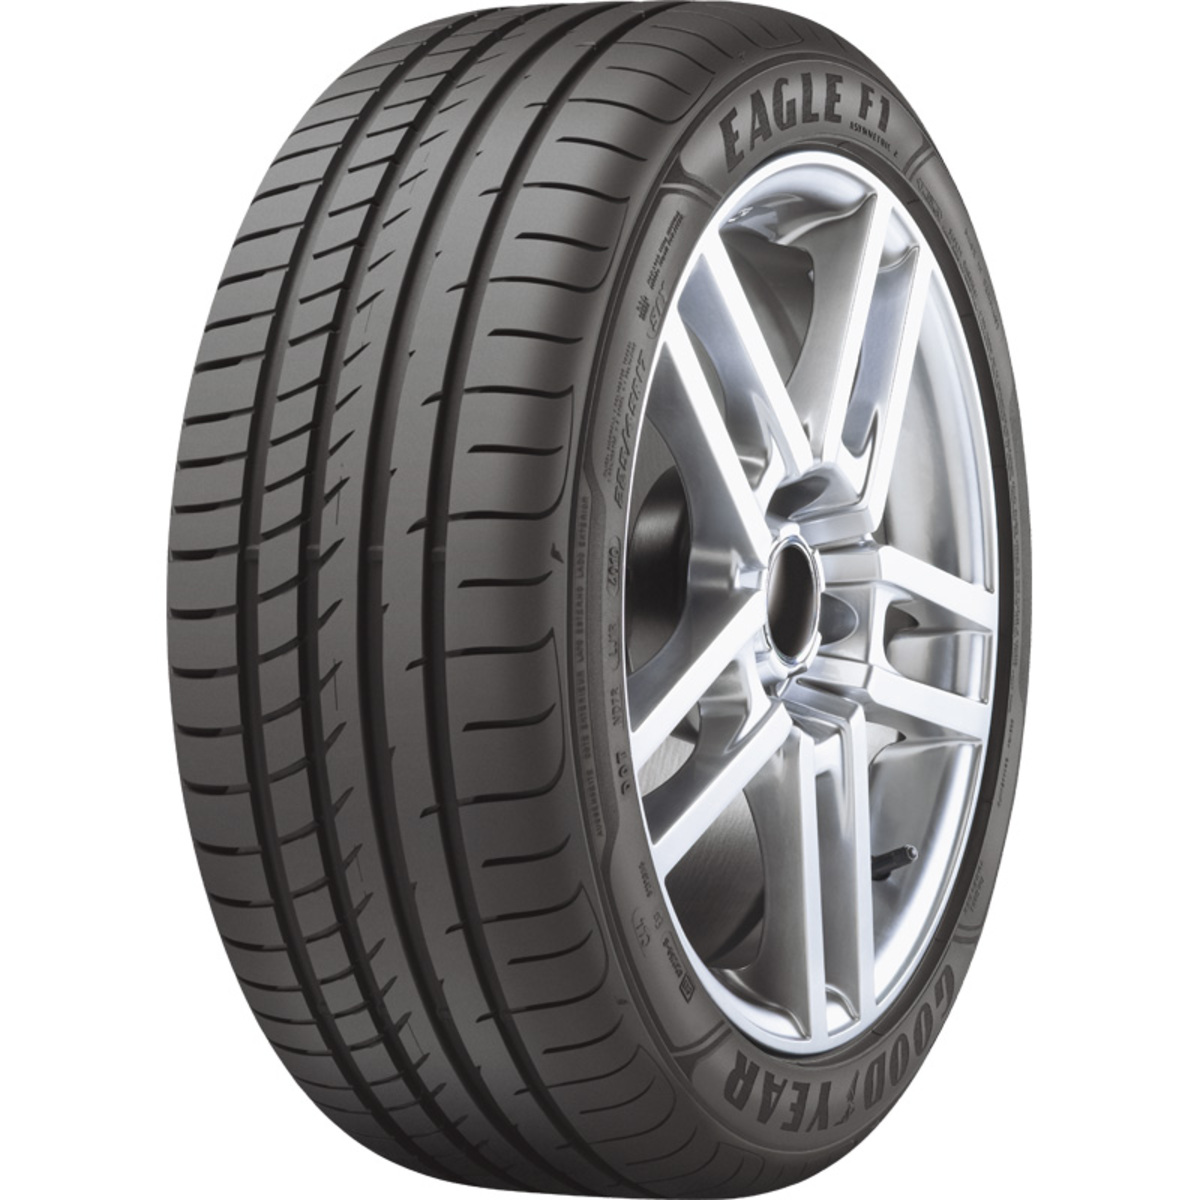 265/35R22 102W GOODYEAR EAGLE F1 XL ASY